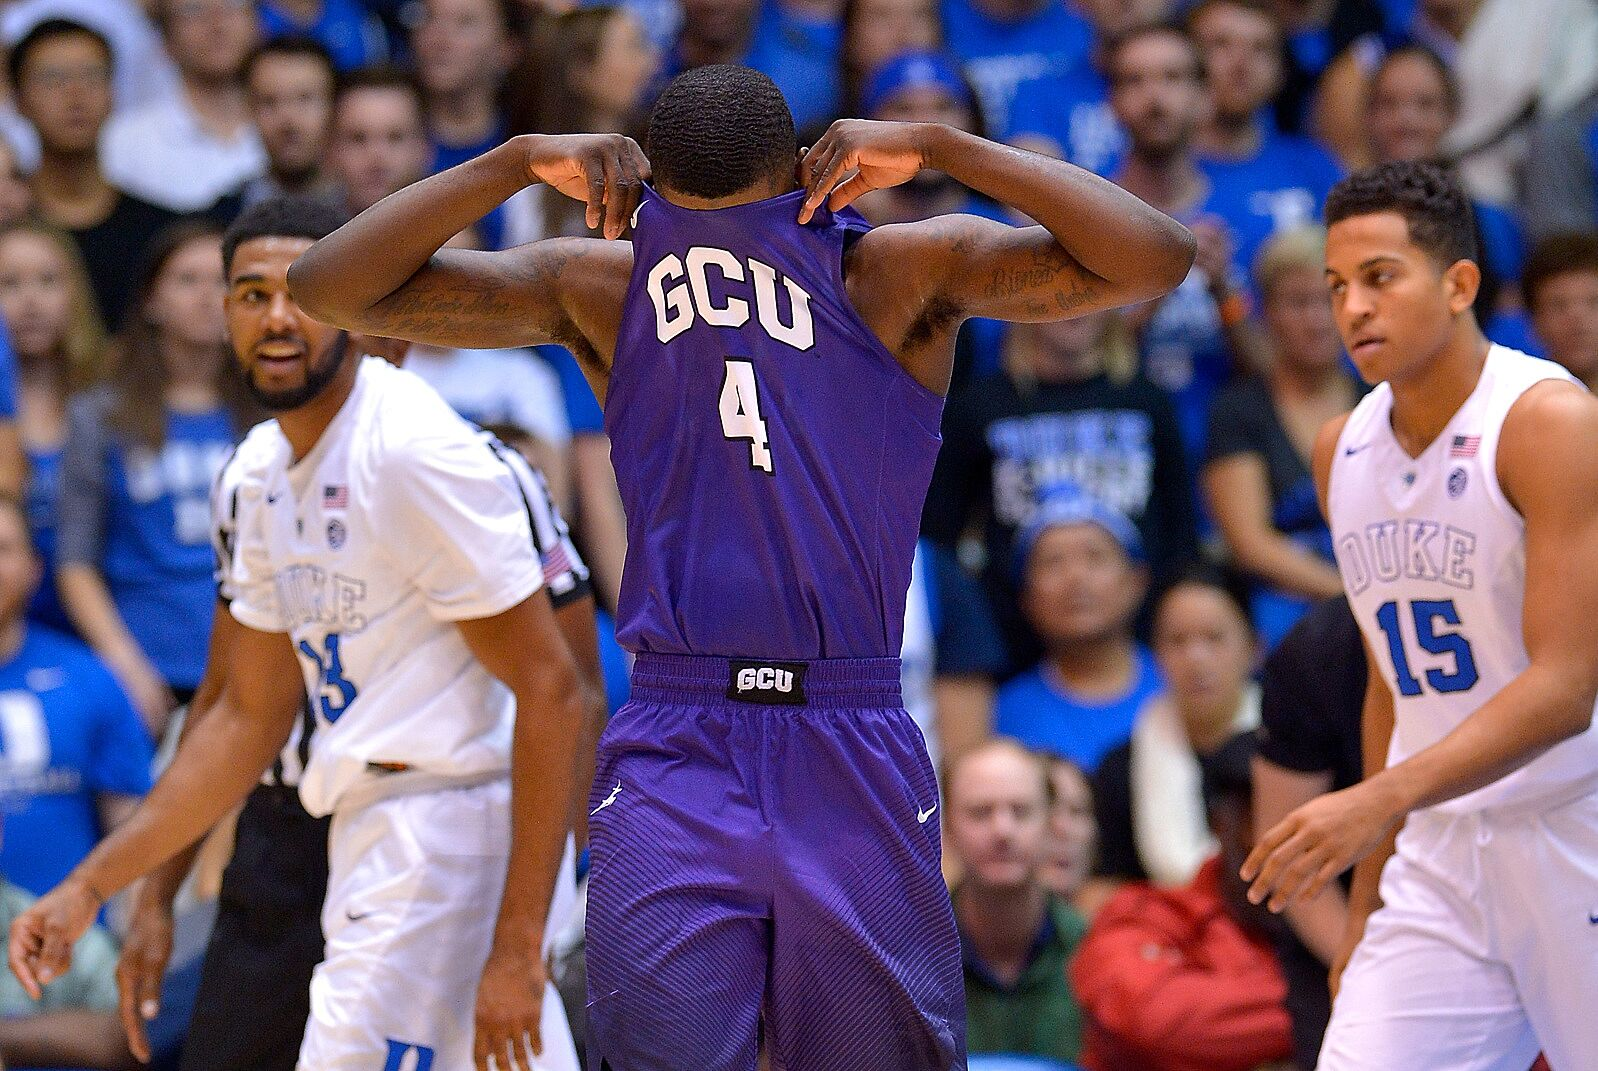 separation shoes 71371 2a00b Grand Canyon Basketball: 2018-19 season preview for the ...